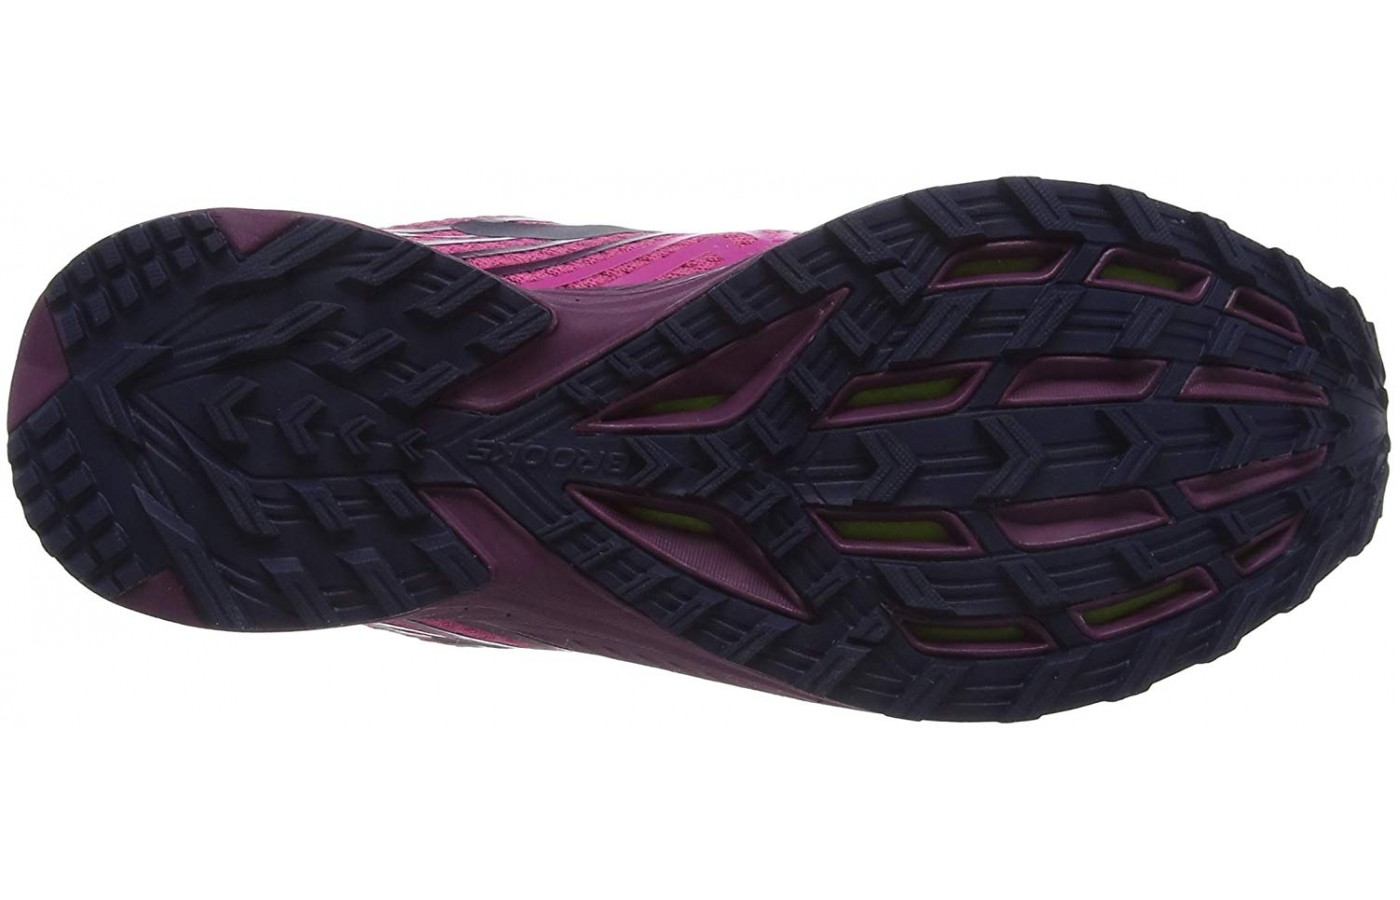 The lightweight trail running shoes boast an outsole that has multi-directional grippy lugs.